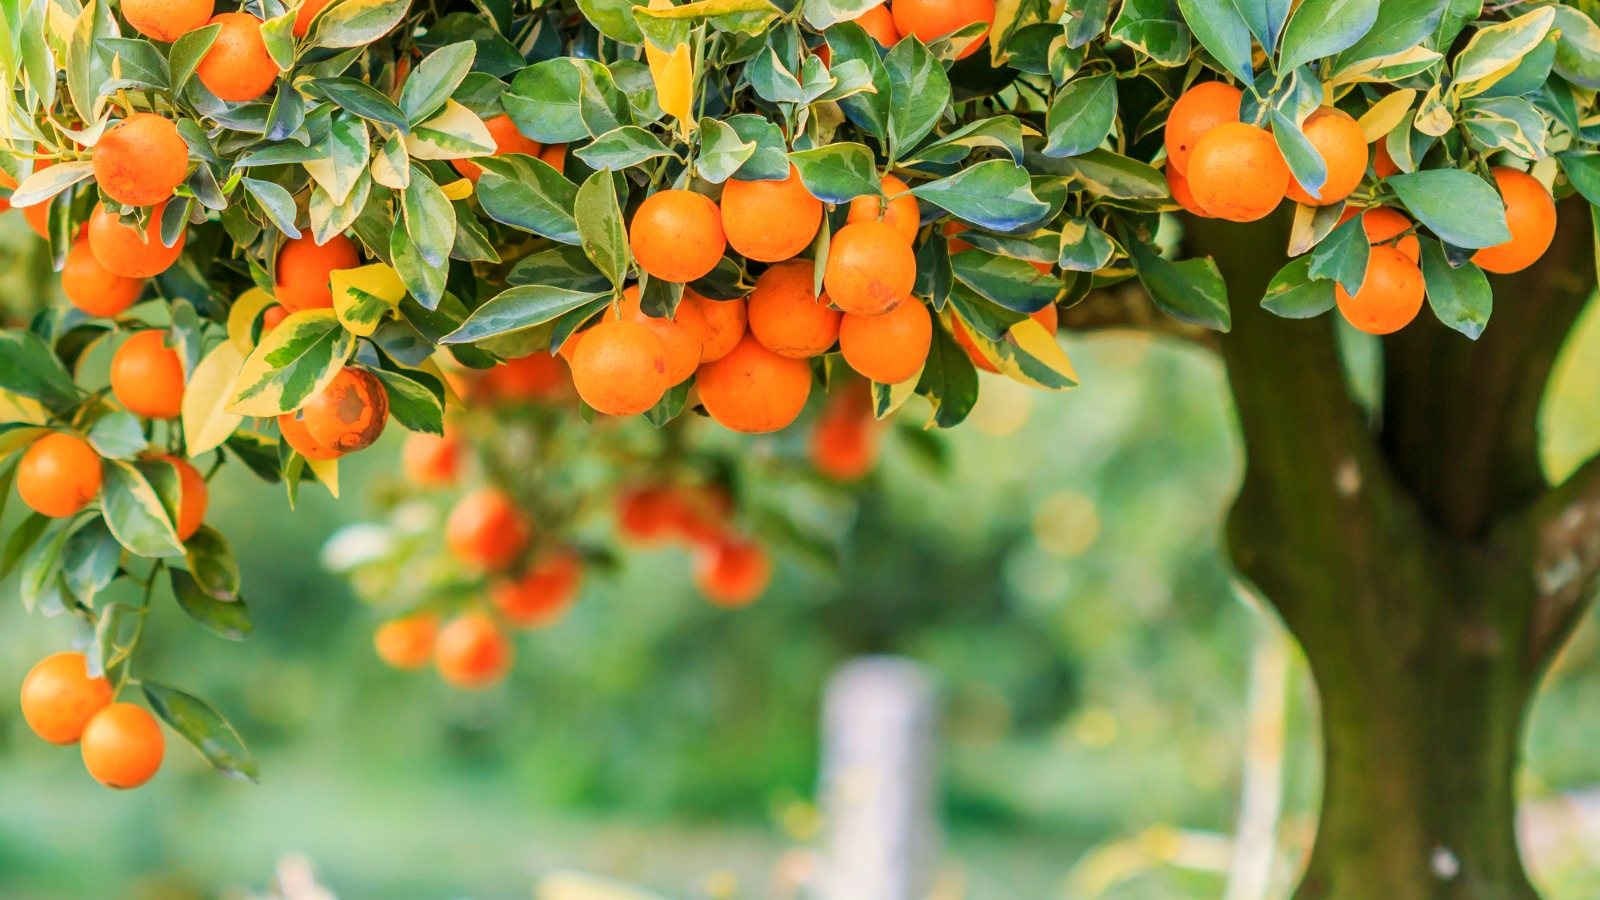 The best time and tools to prune citrus – find out more.